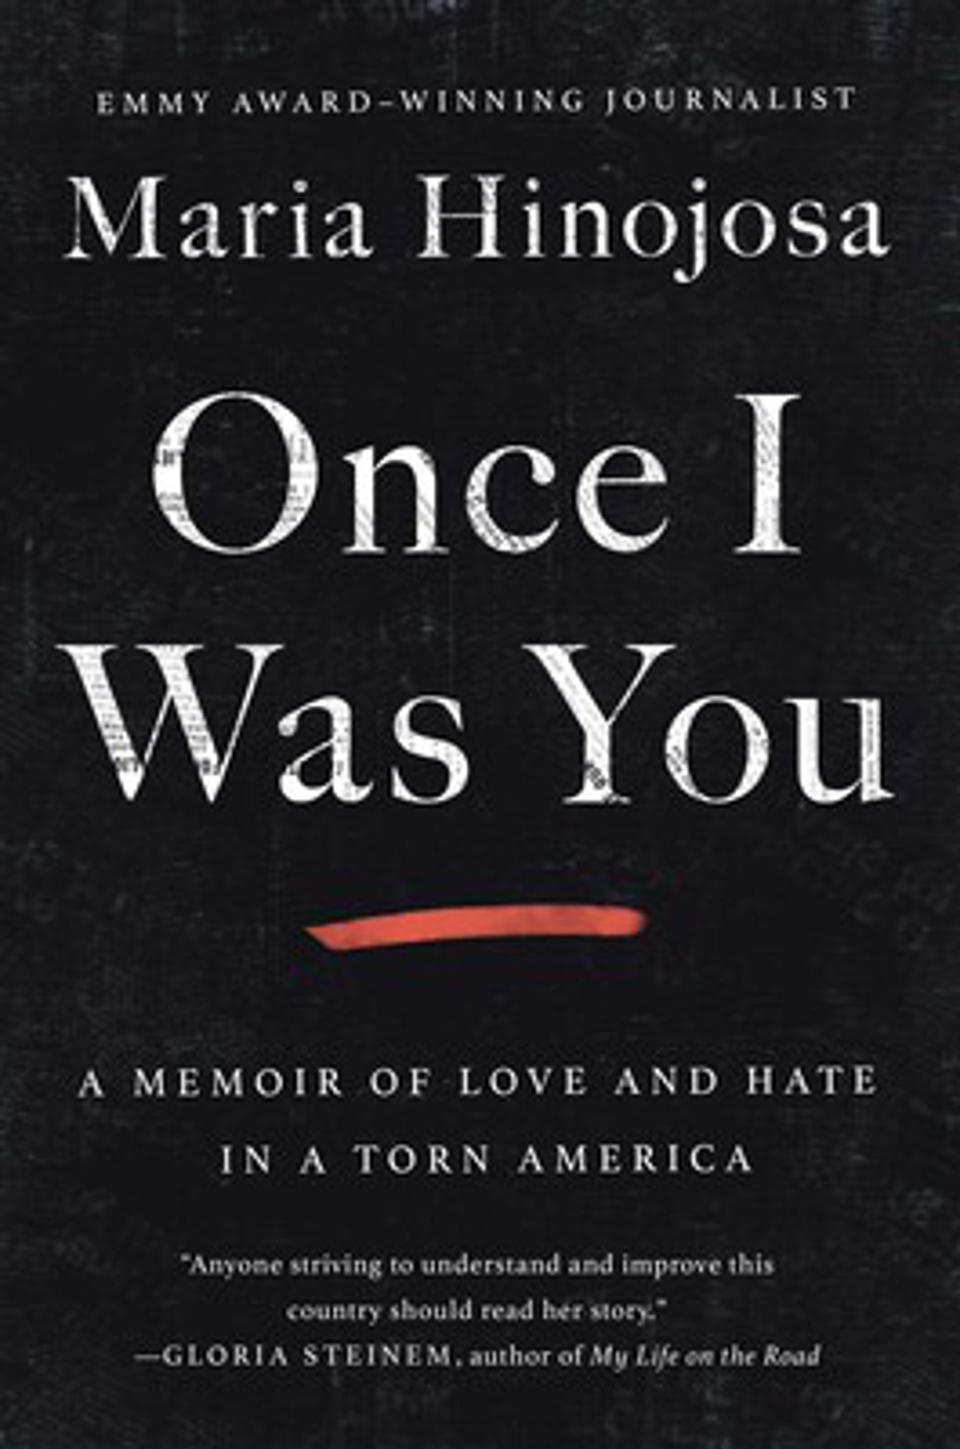 ″Once I Was You: A Memoir of Love and Hate in a Torn America″ released today.